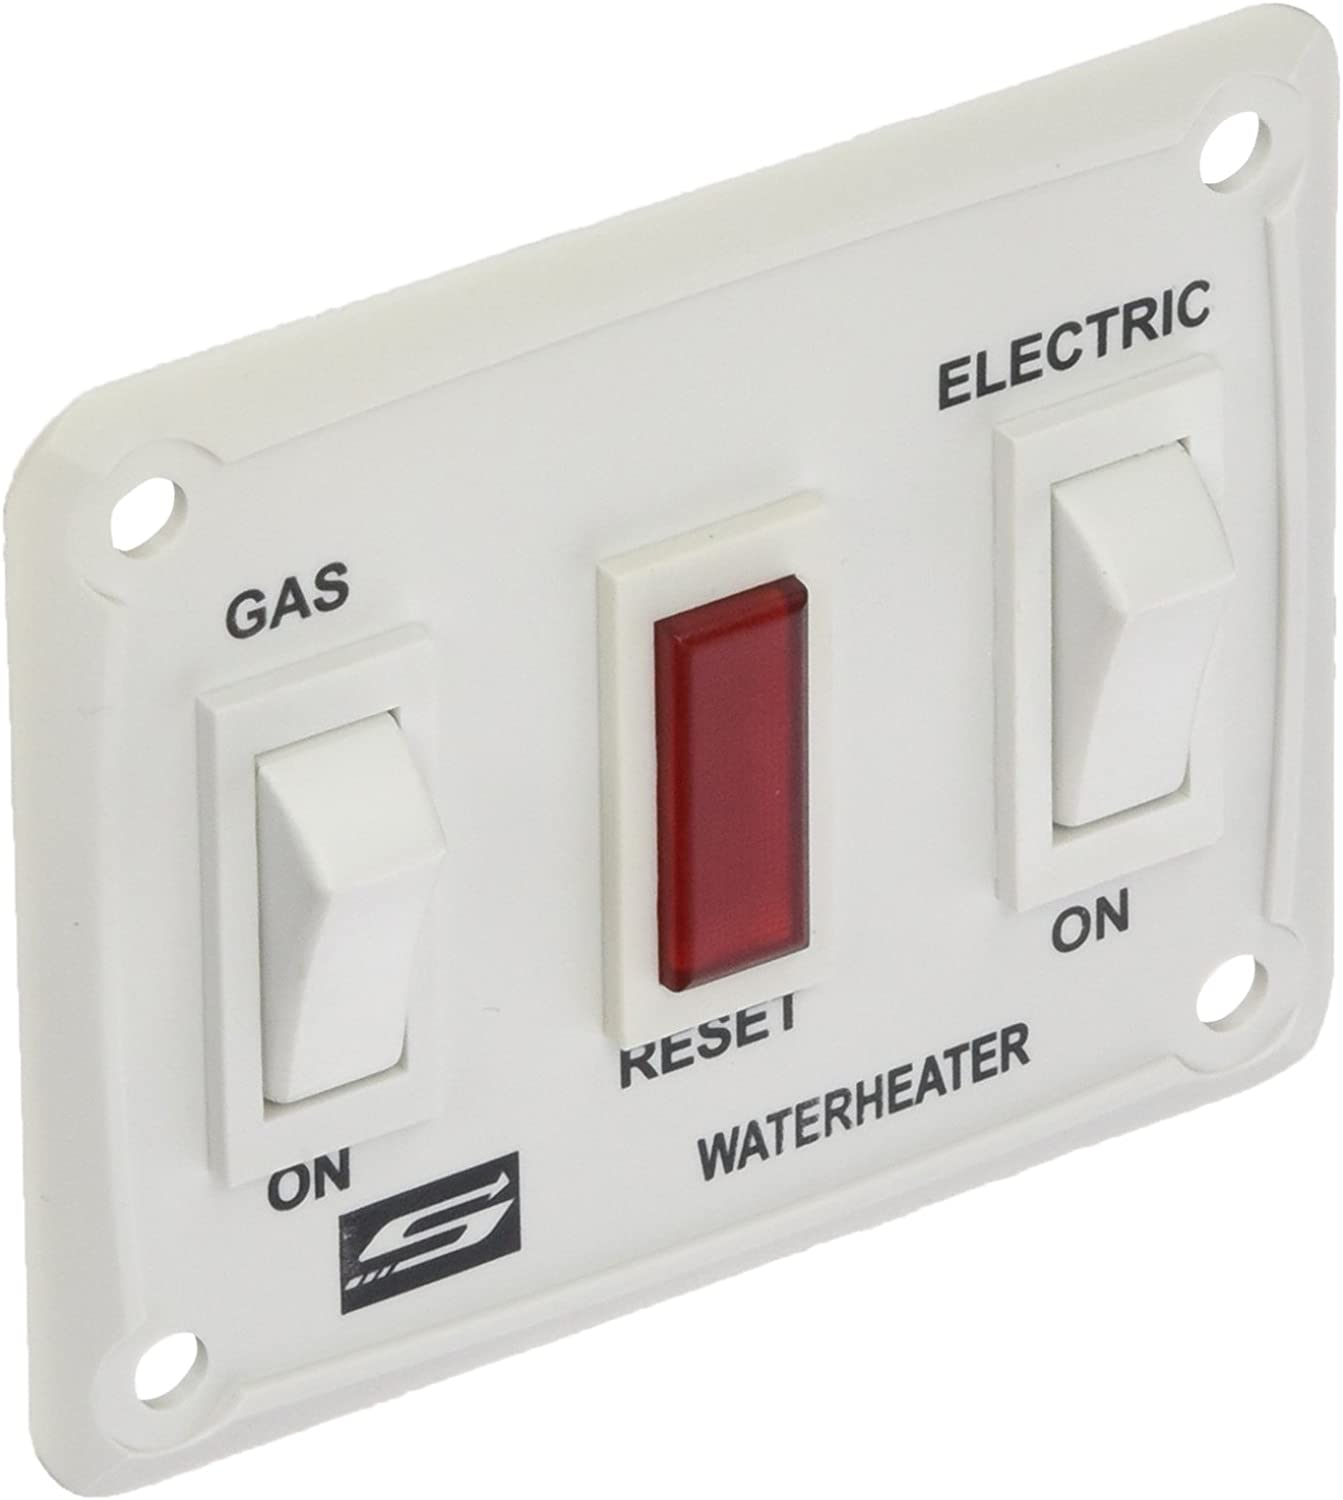 Suburban SB232882 232882 Water Heater Wall Switch Assembly-White